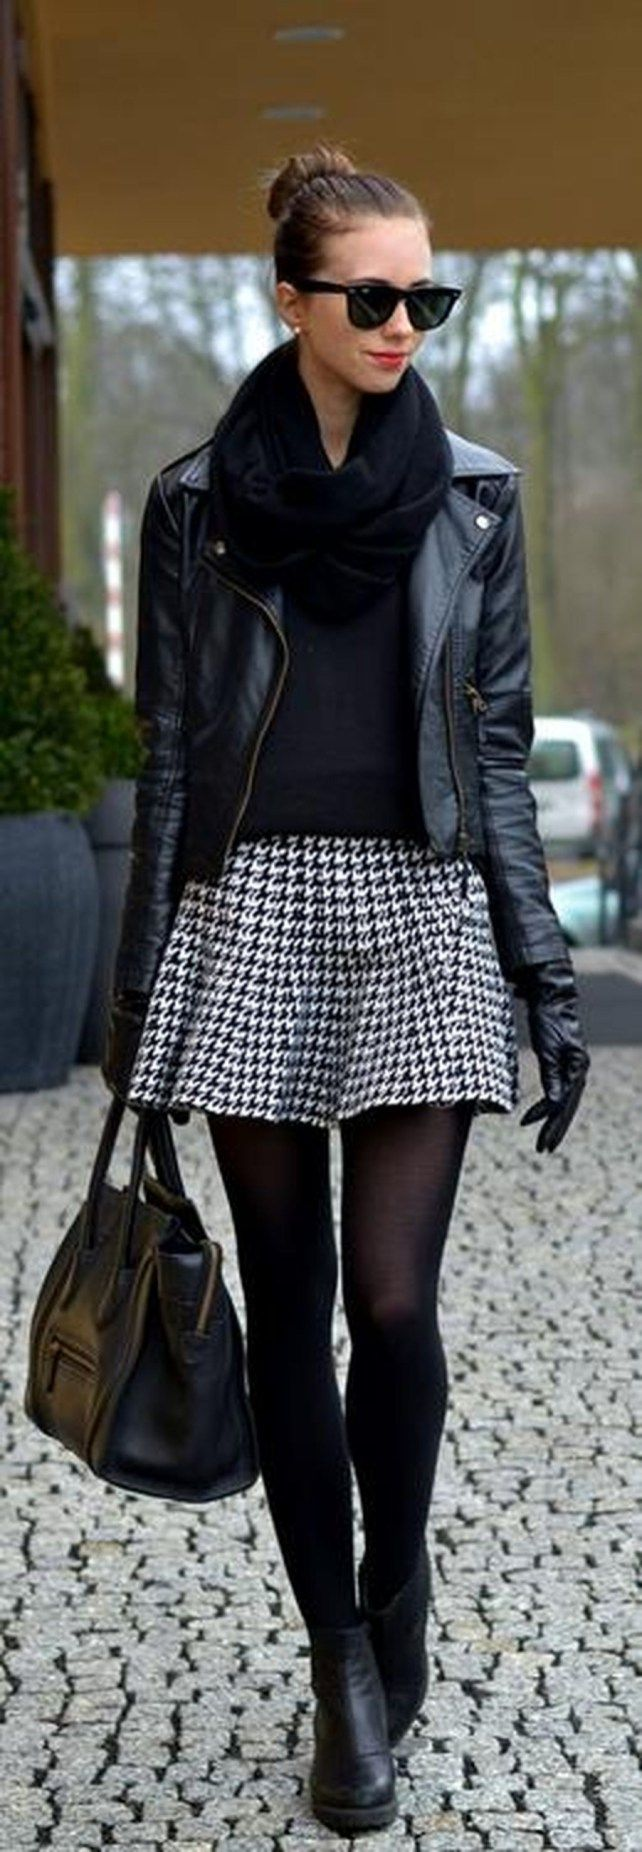 Classy and casual women winter leather jacket outfits ideas 22